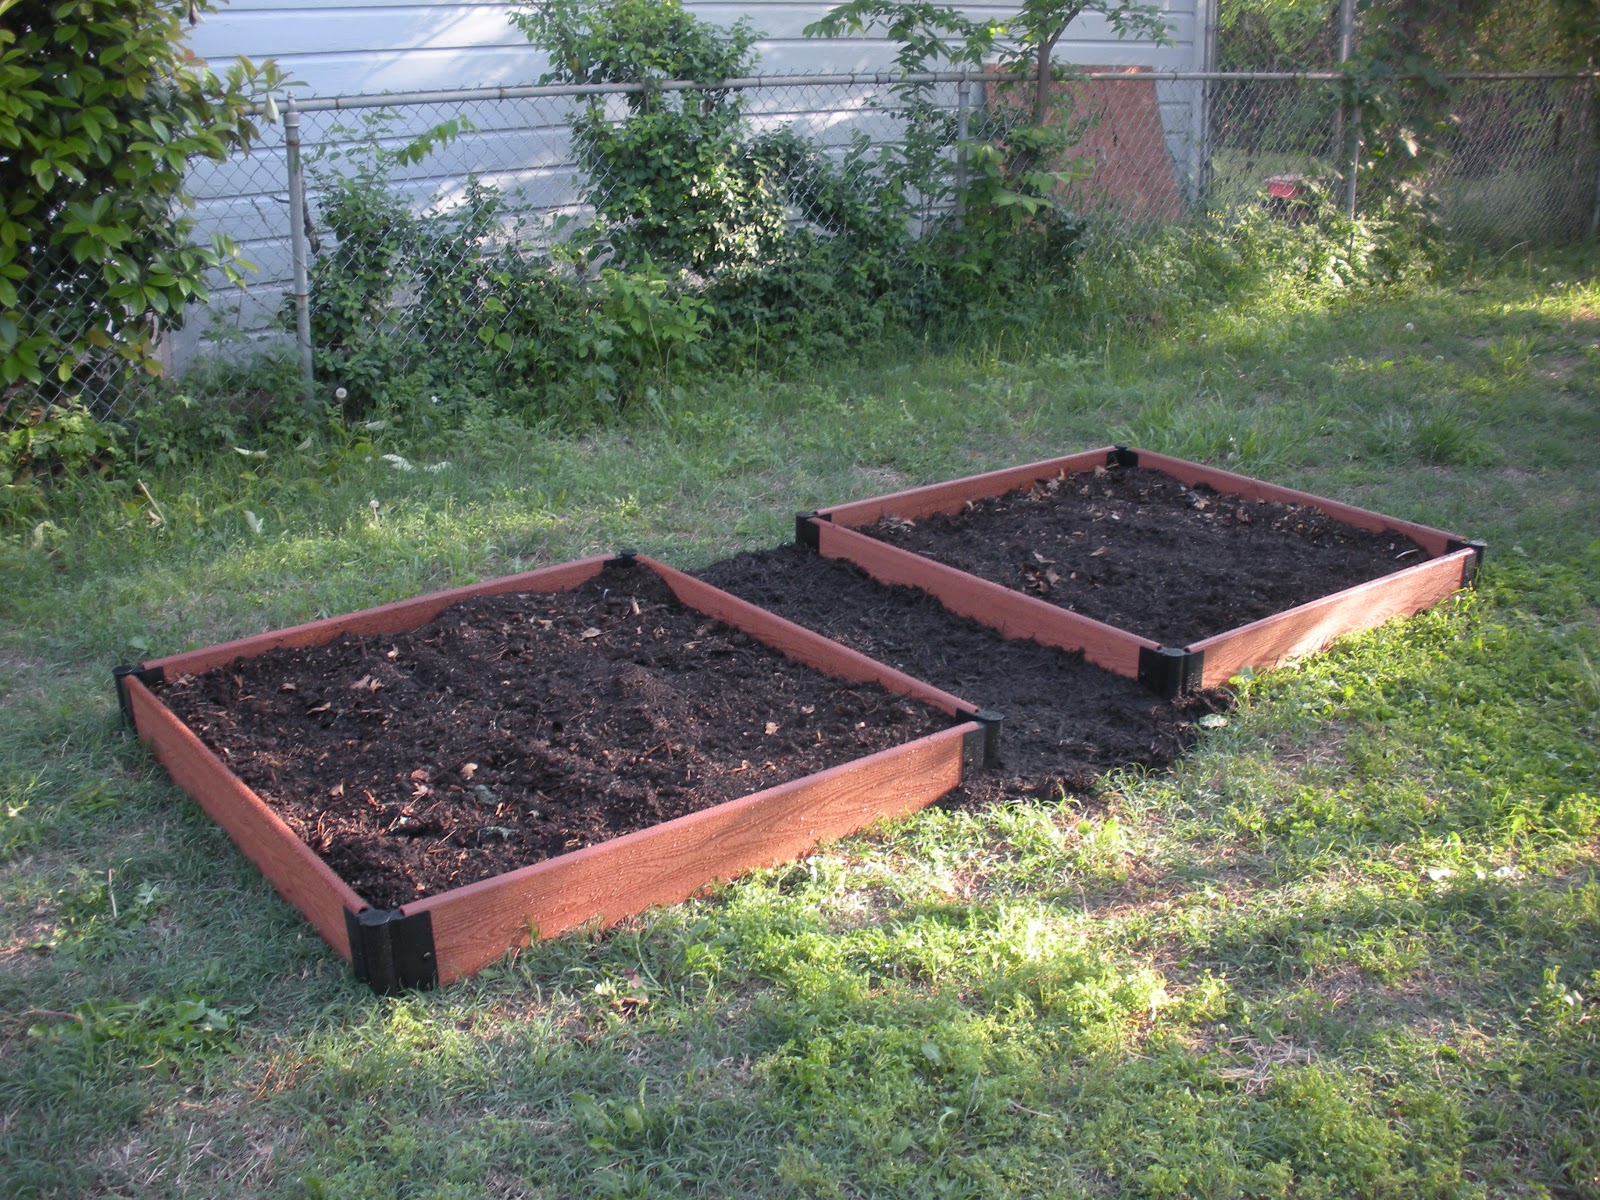 Aldi Garden Beds Life Of A Crafter Crafting A Raised Garden Bed On The Cheap